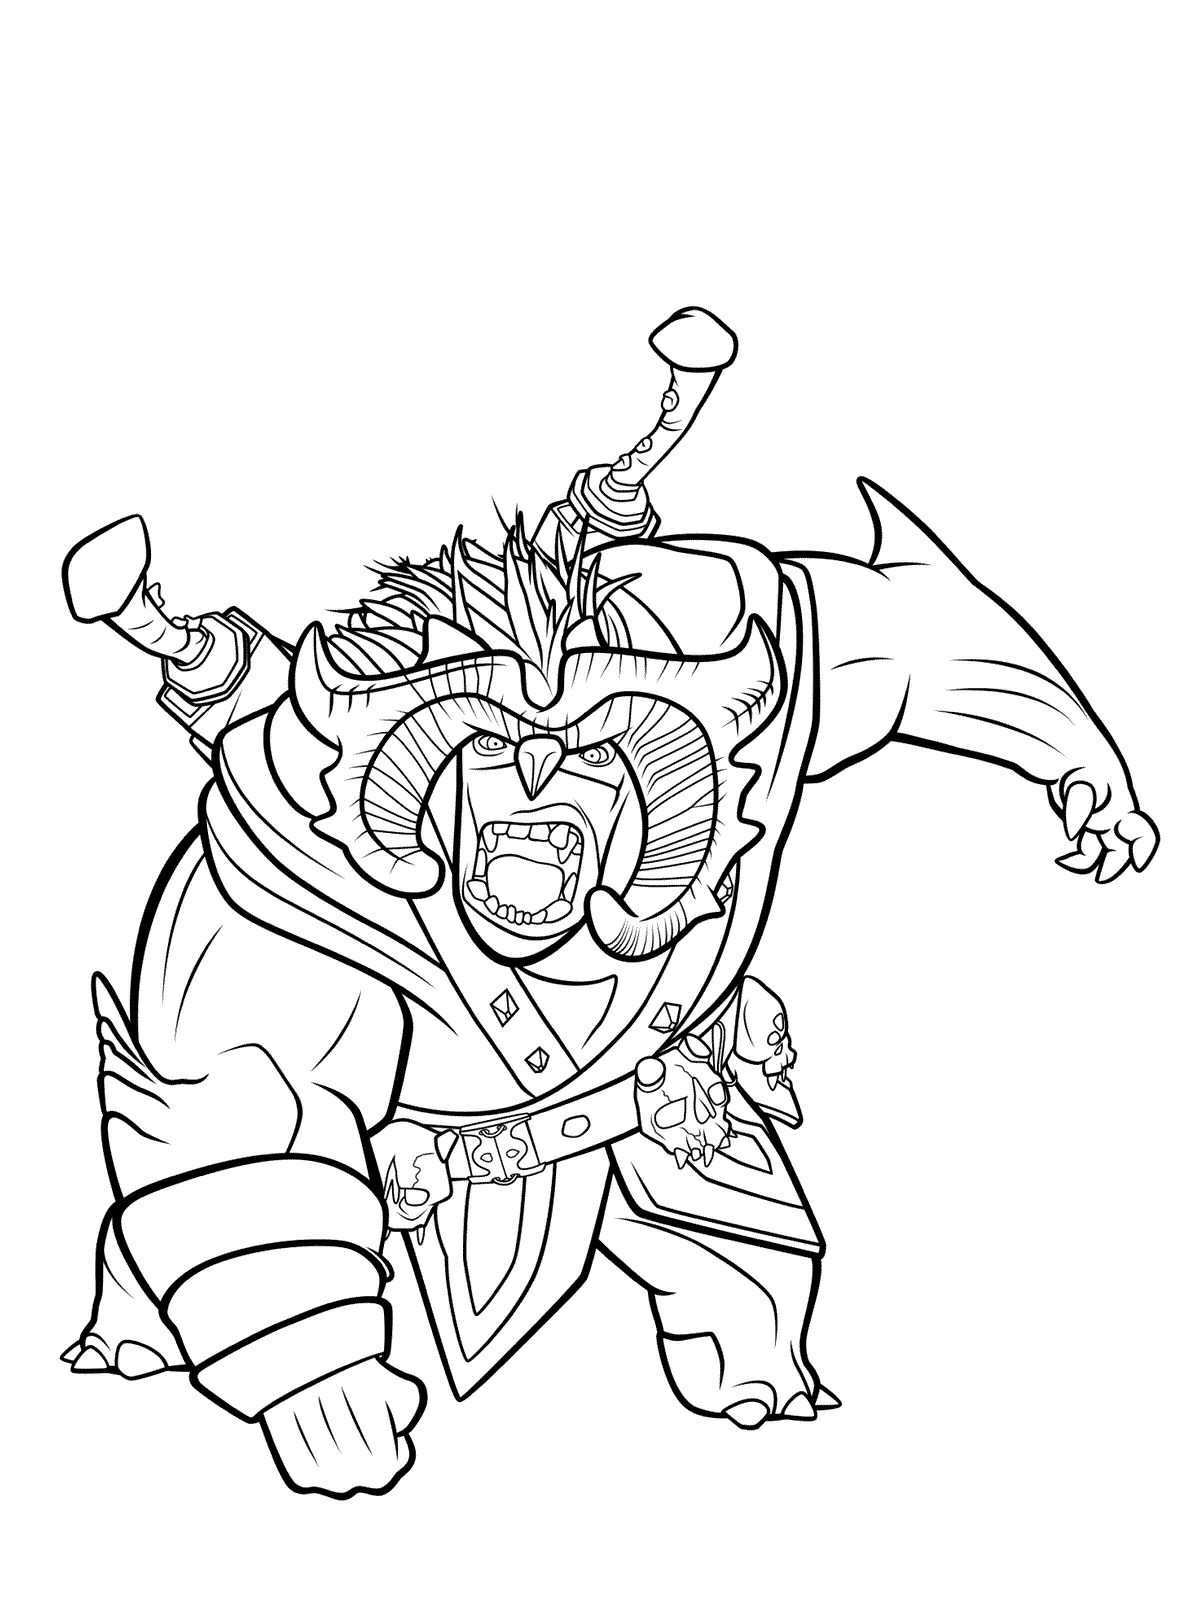 Coloring Page: 10 Coloring Pages Of Trollhunters